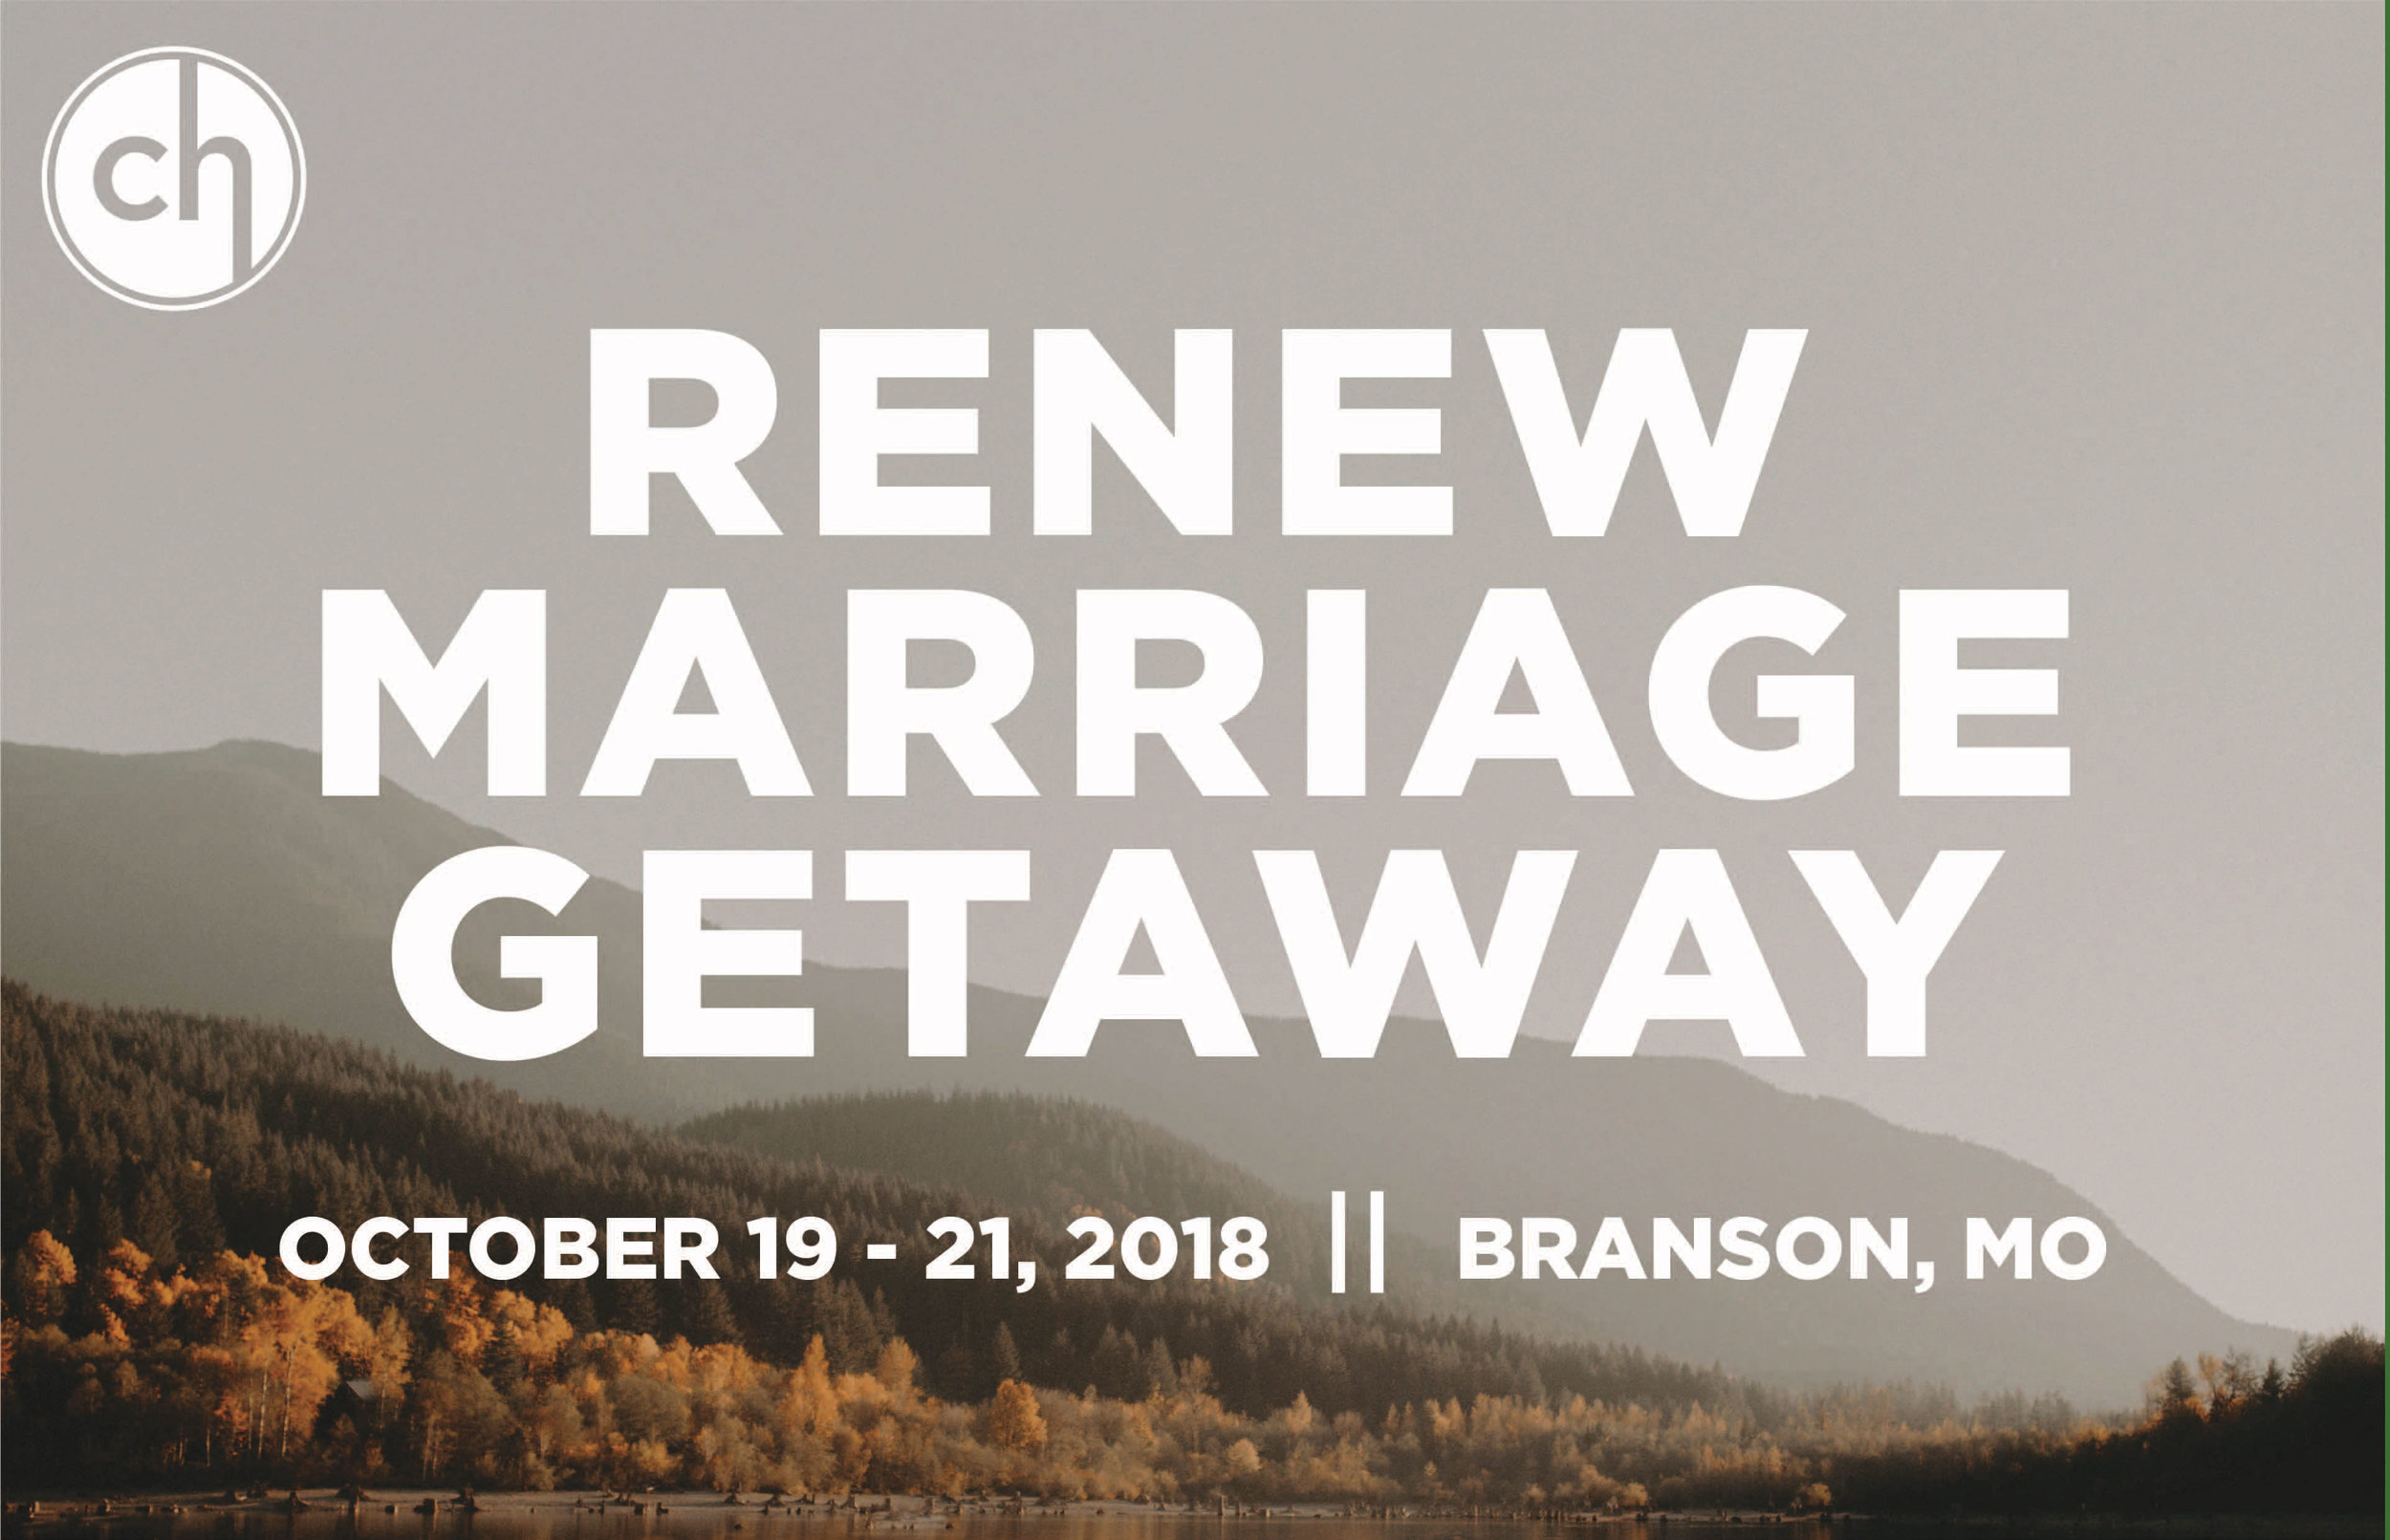 Renew-Marriage-Getaway-2018.jpg